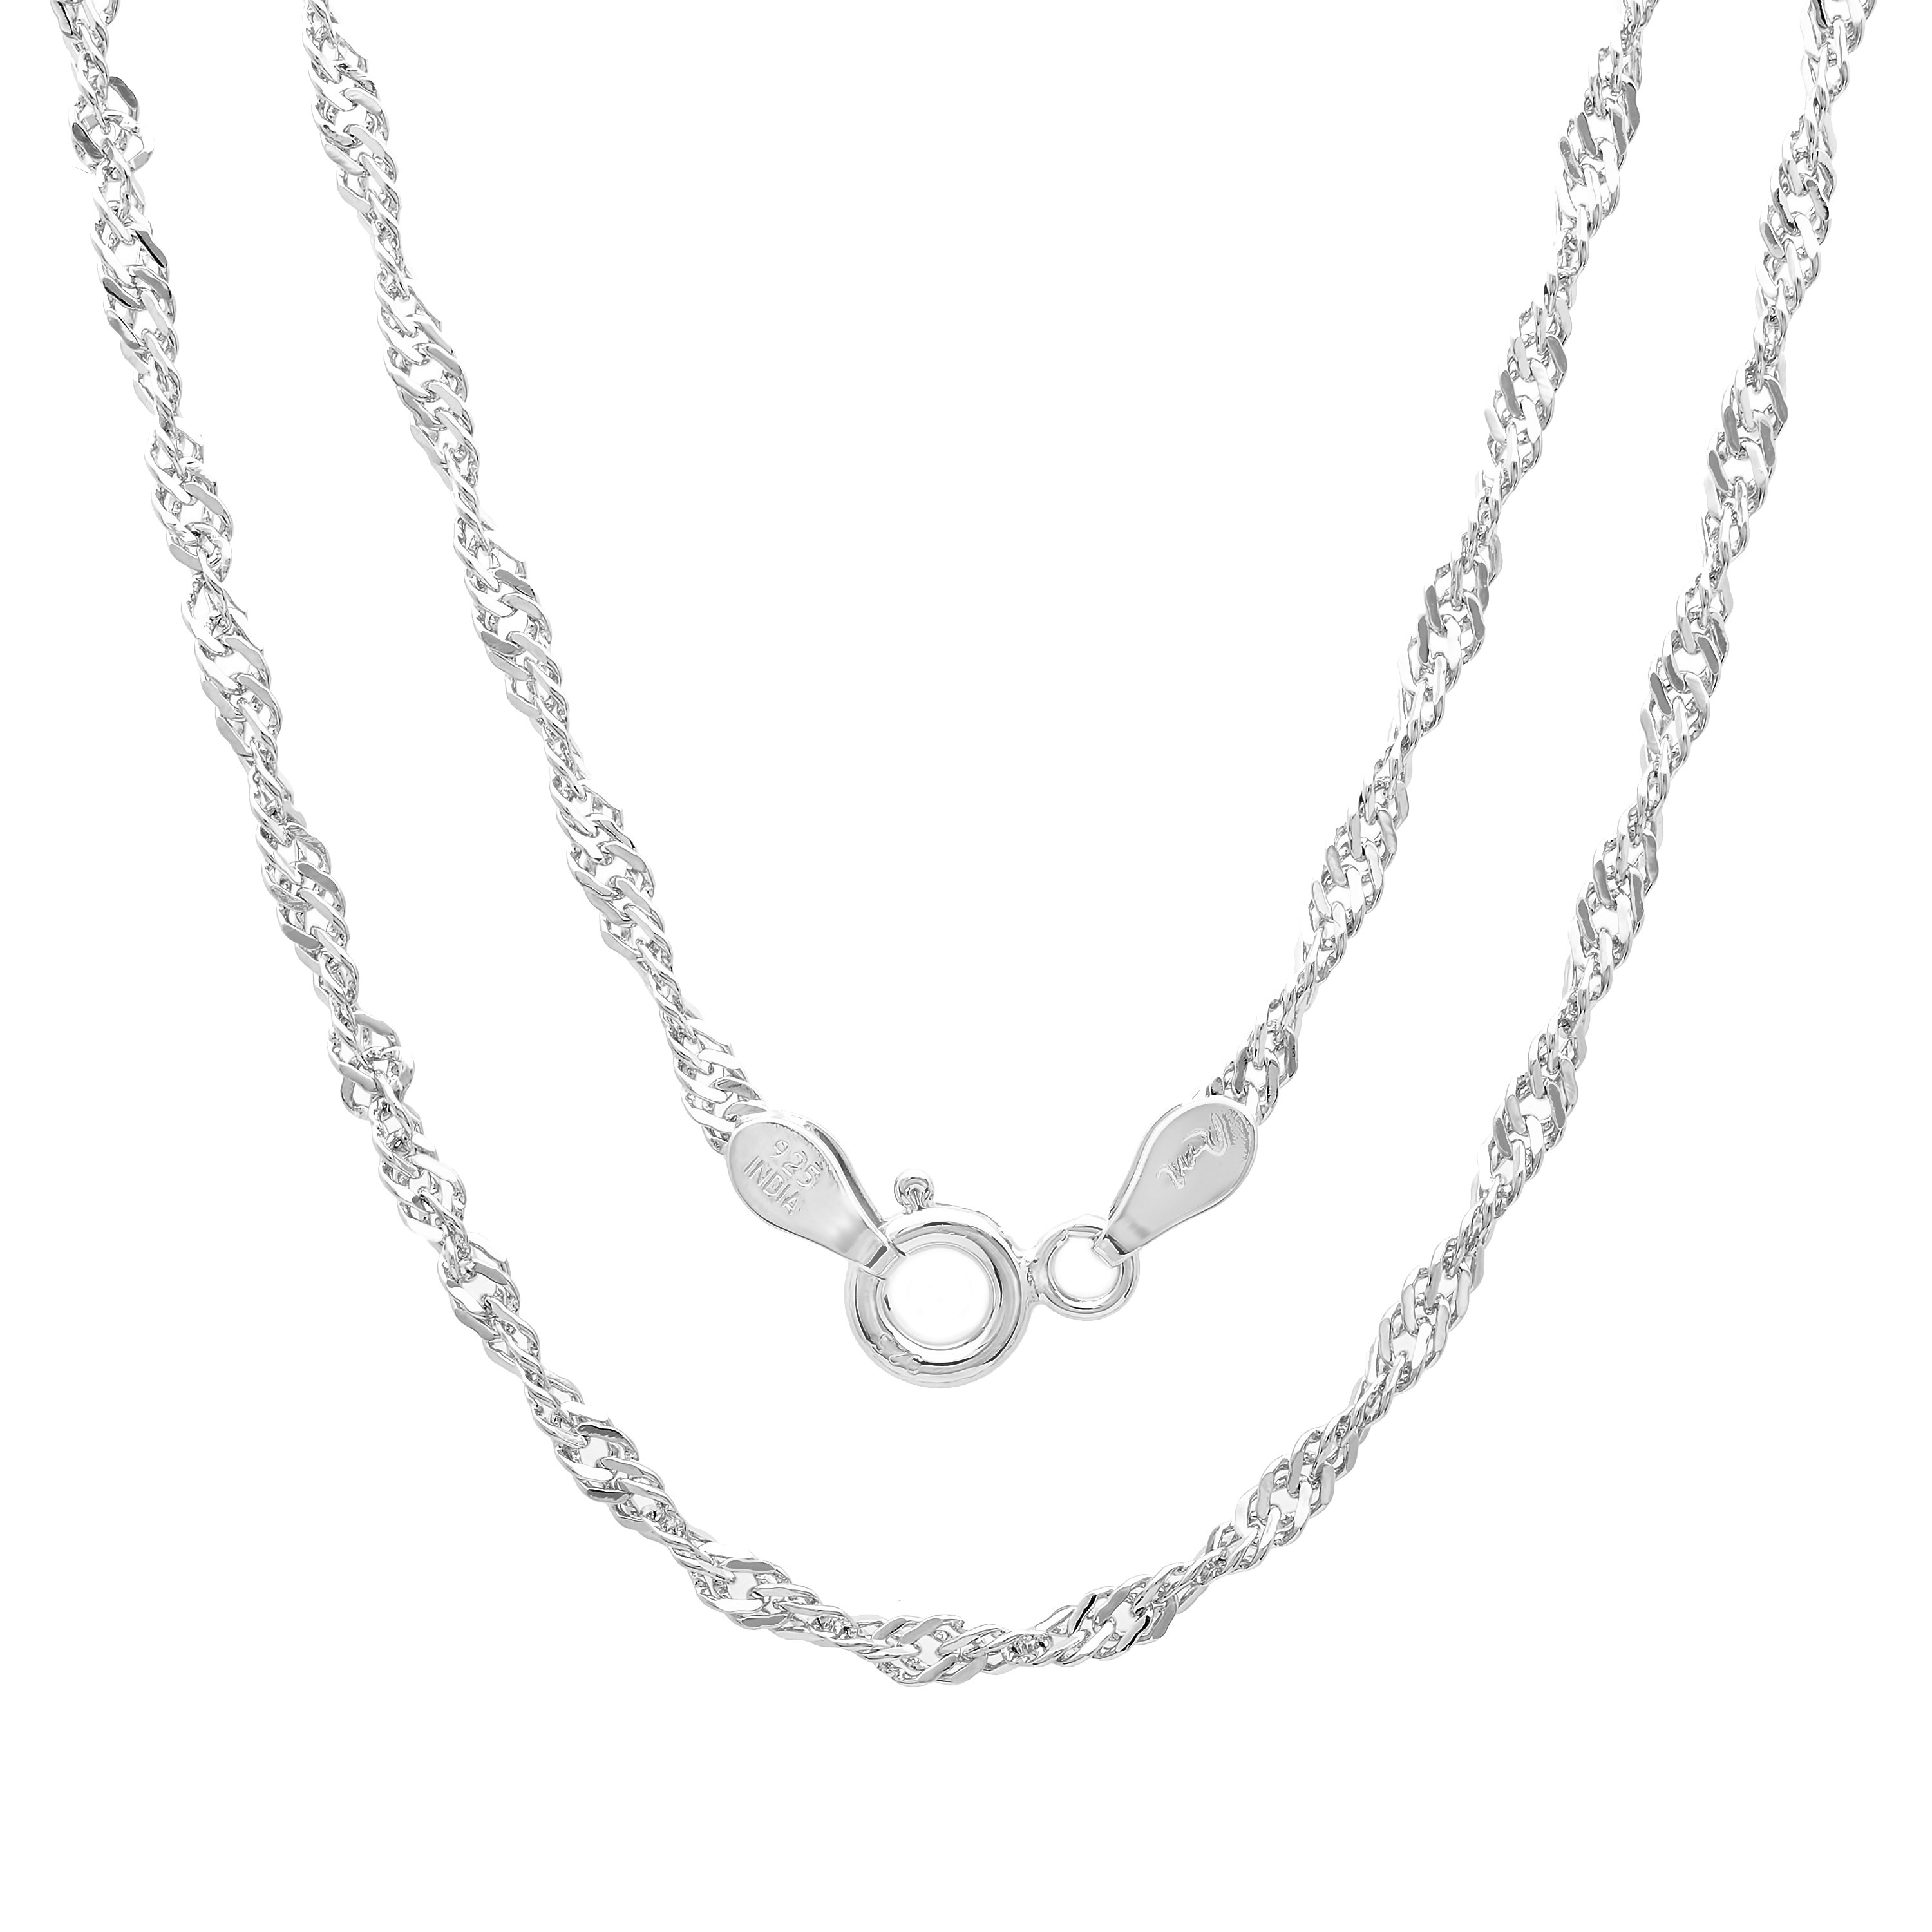 Glamor Woman Silver Chain Necklace Handsome Appearance New Fashion High-quality Fashion Sterling Silver Jewelry Simple 925 Silver Solid Water Drop Pendant